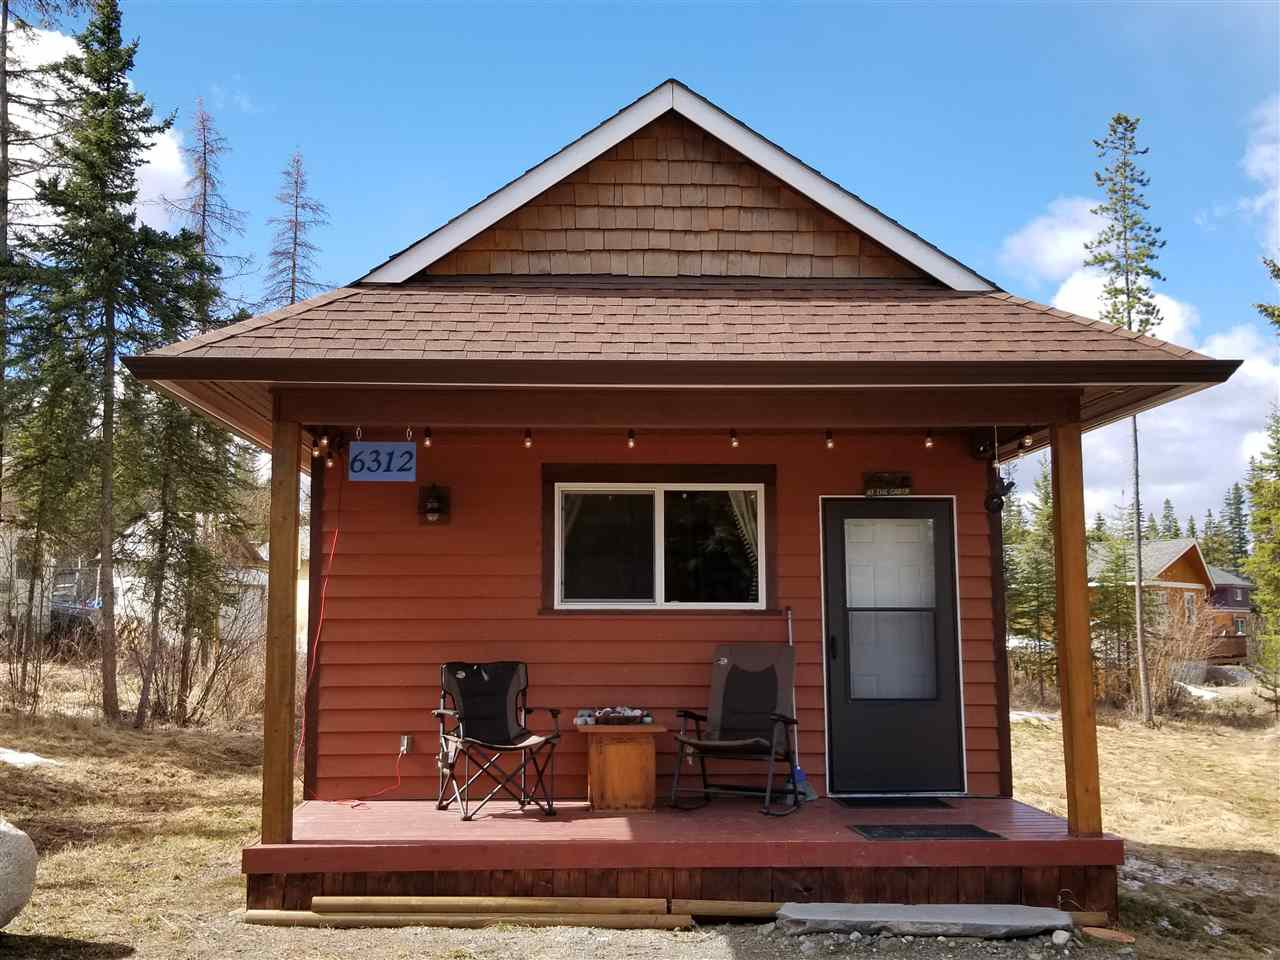 Main Photo: 6312 MACABAR Road in Deka Lake / Sulphurous / Hathaway Lakes: Deka/Sulphurous/Hathaway Lakes House for sale (100 Mile House (Zone 10))  : MLS®# R2361407